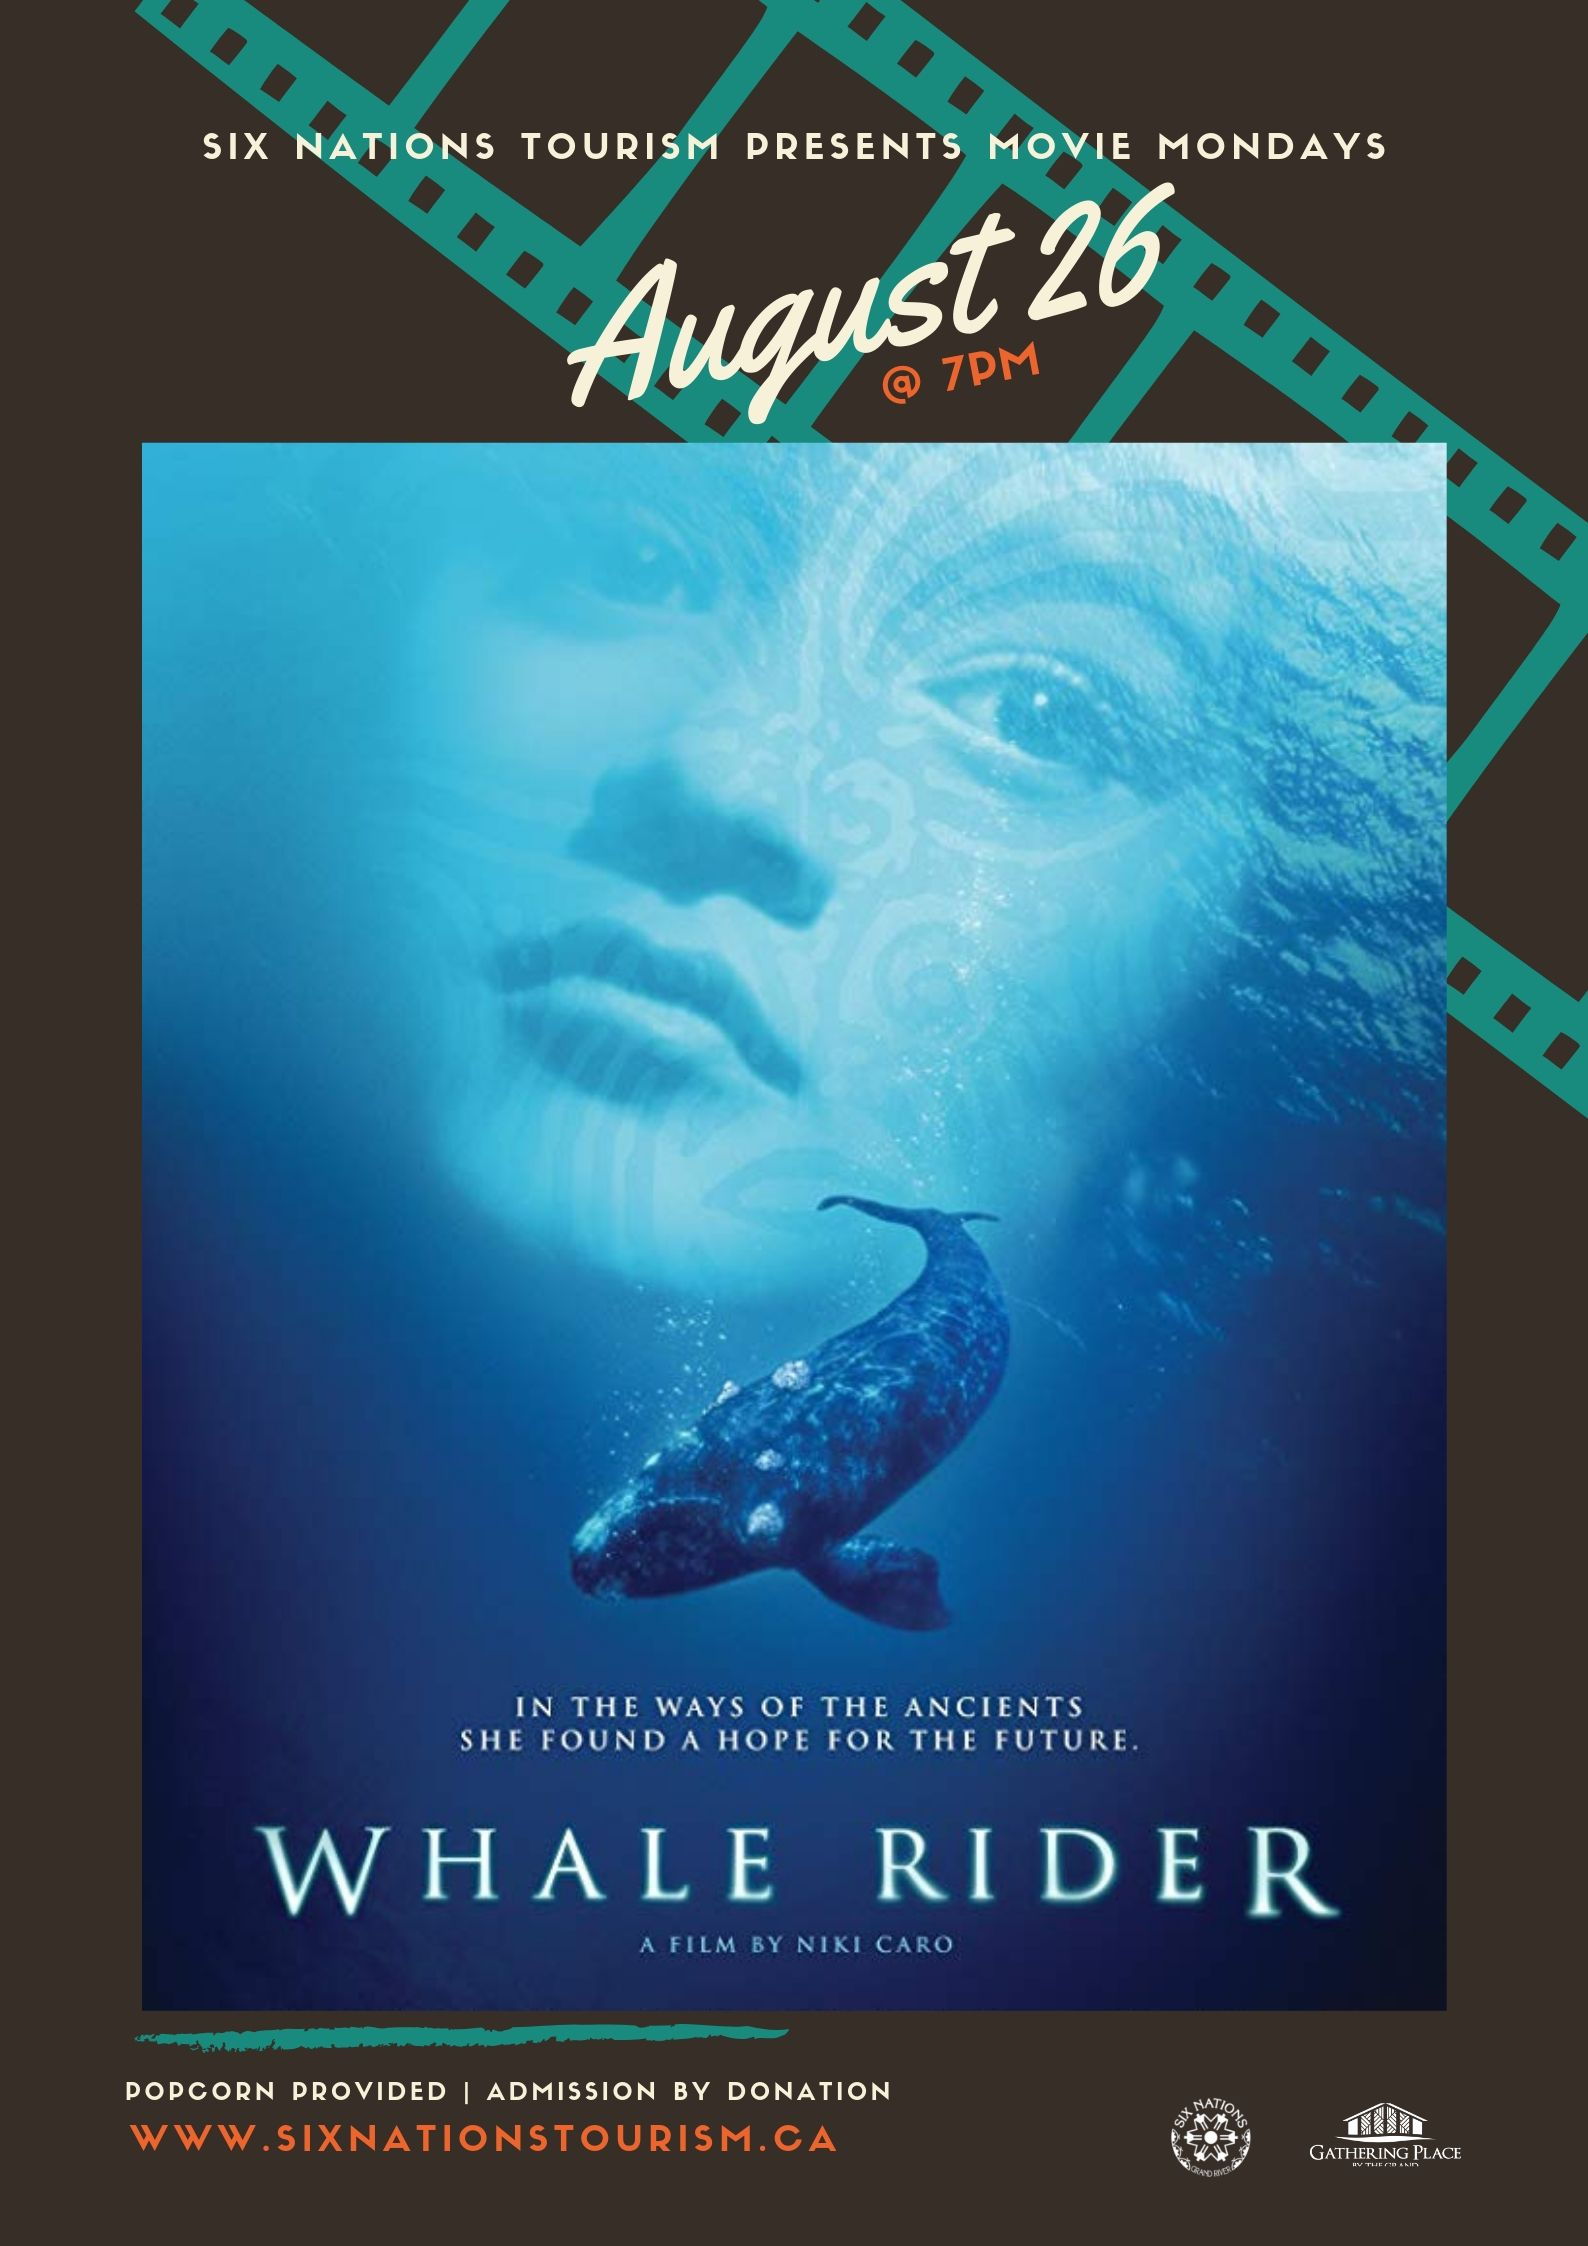 Six Nations Tourism Presents Movie Monday: Whale Rider